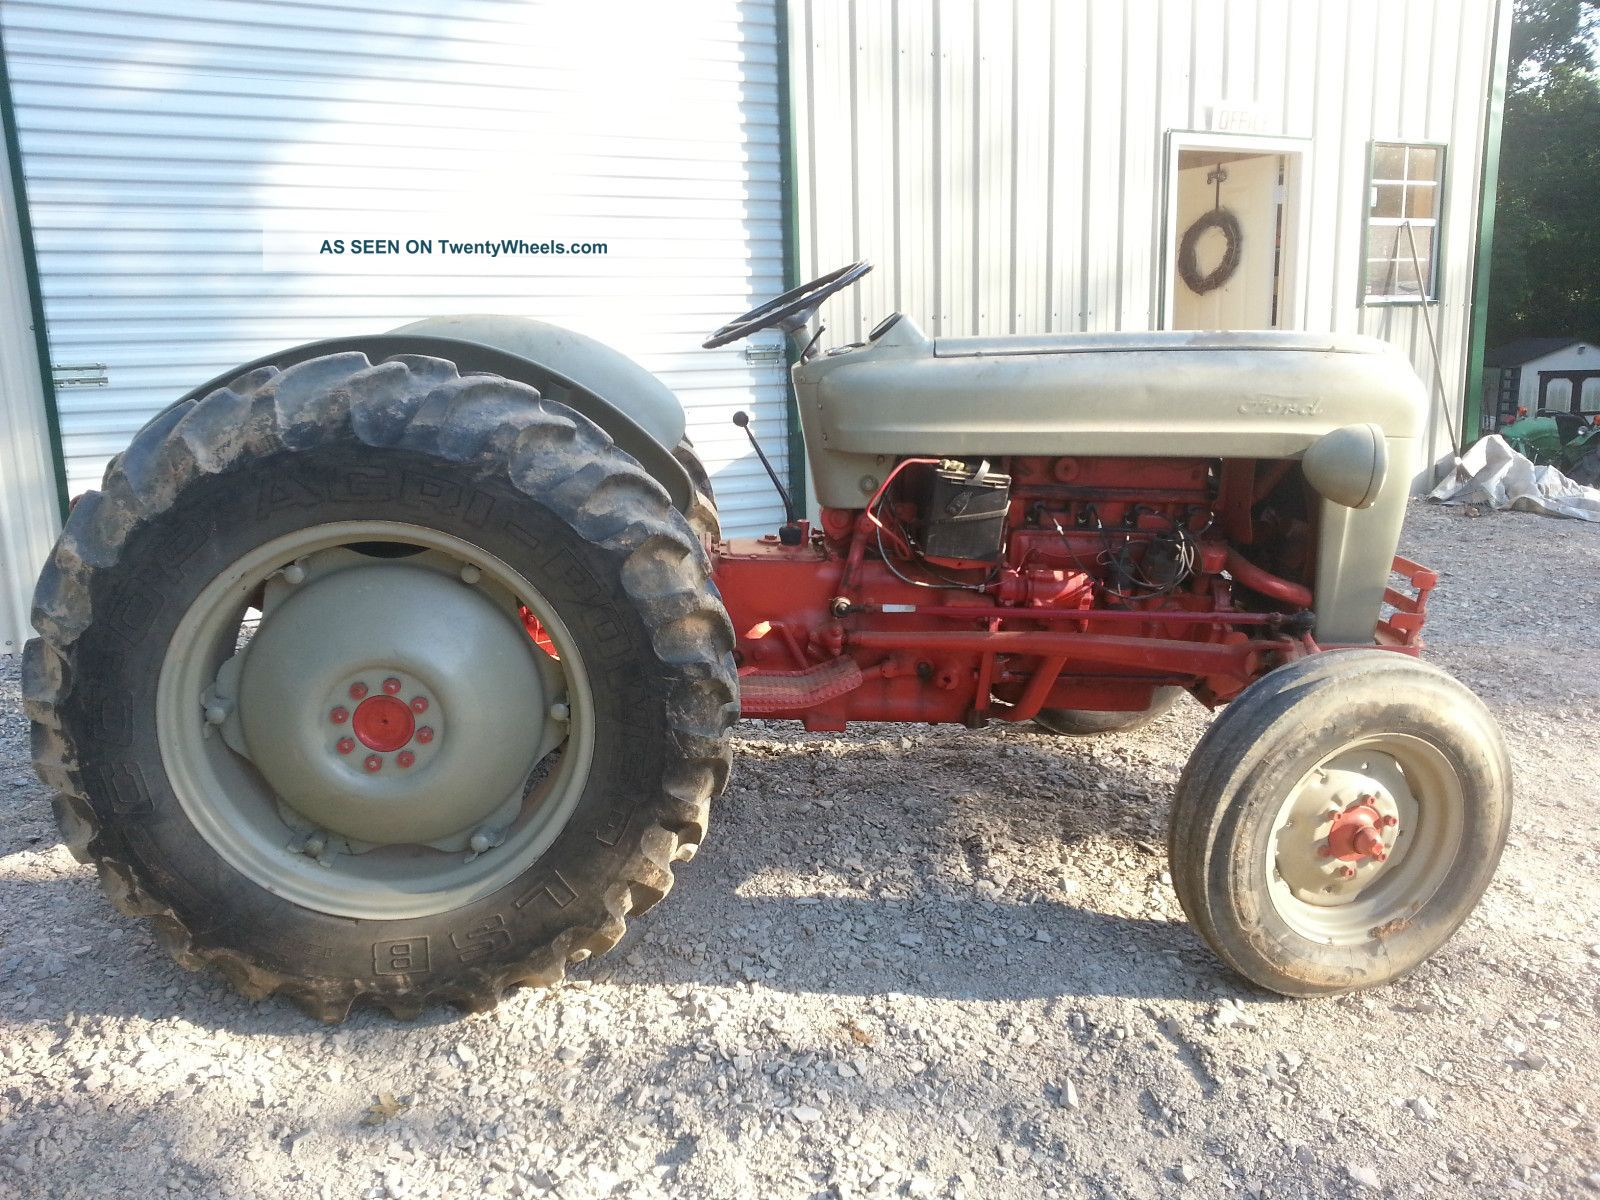 Ford 600 Tractor Serial Number : Ford jubilee tractor serial number location